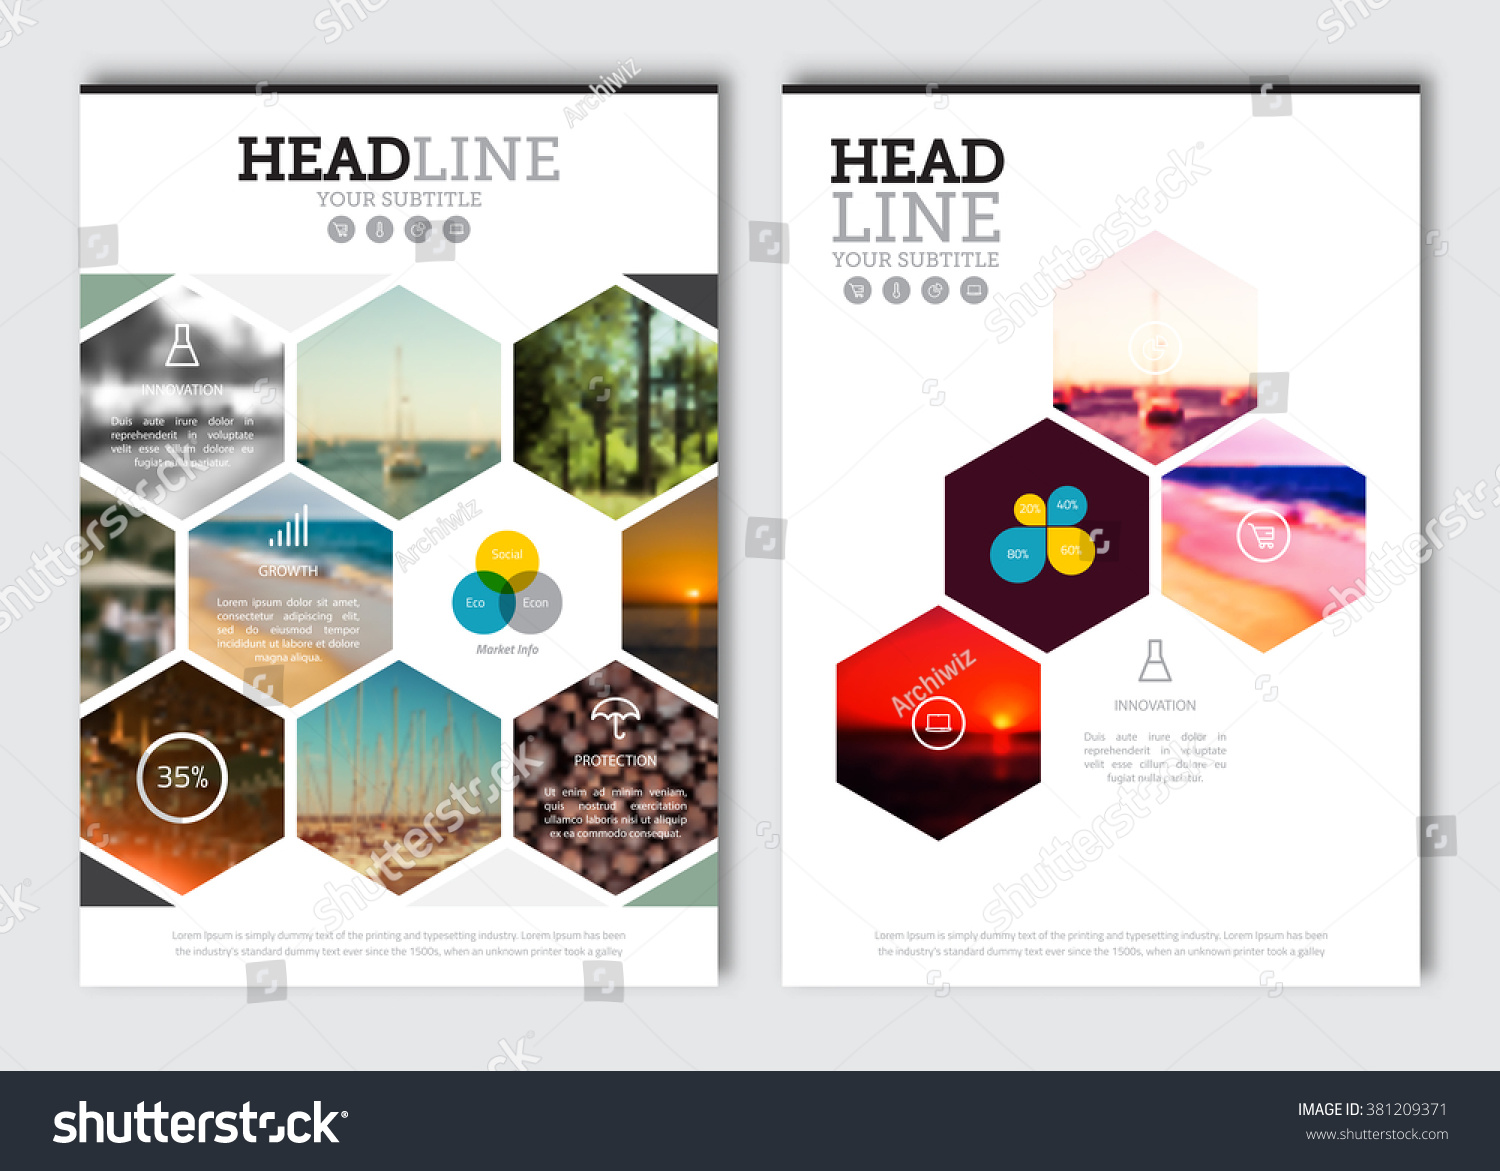 Poster design elements - Business Brochure Design Template Vector Flyer Layout Blur Background With Elements For Magazine